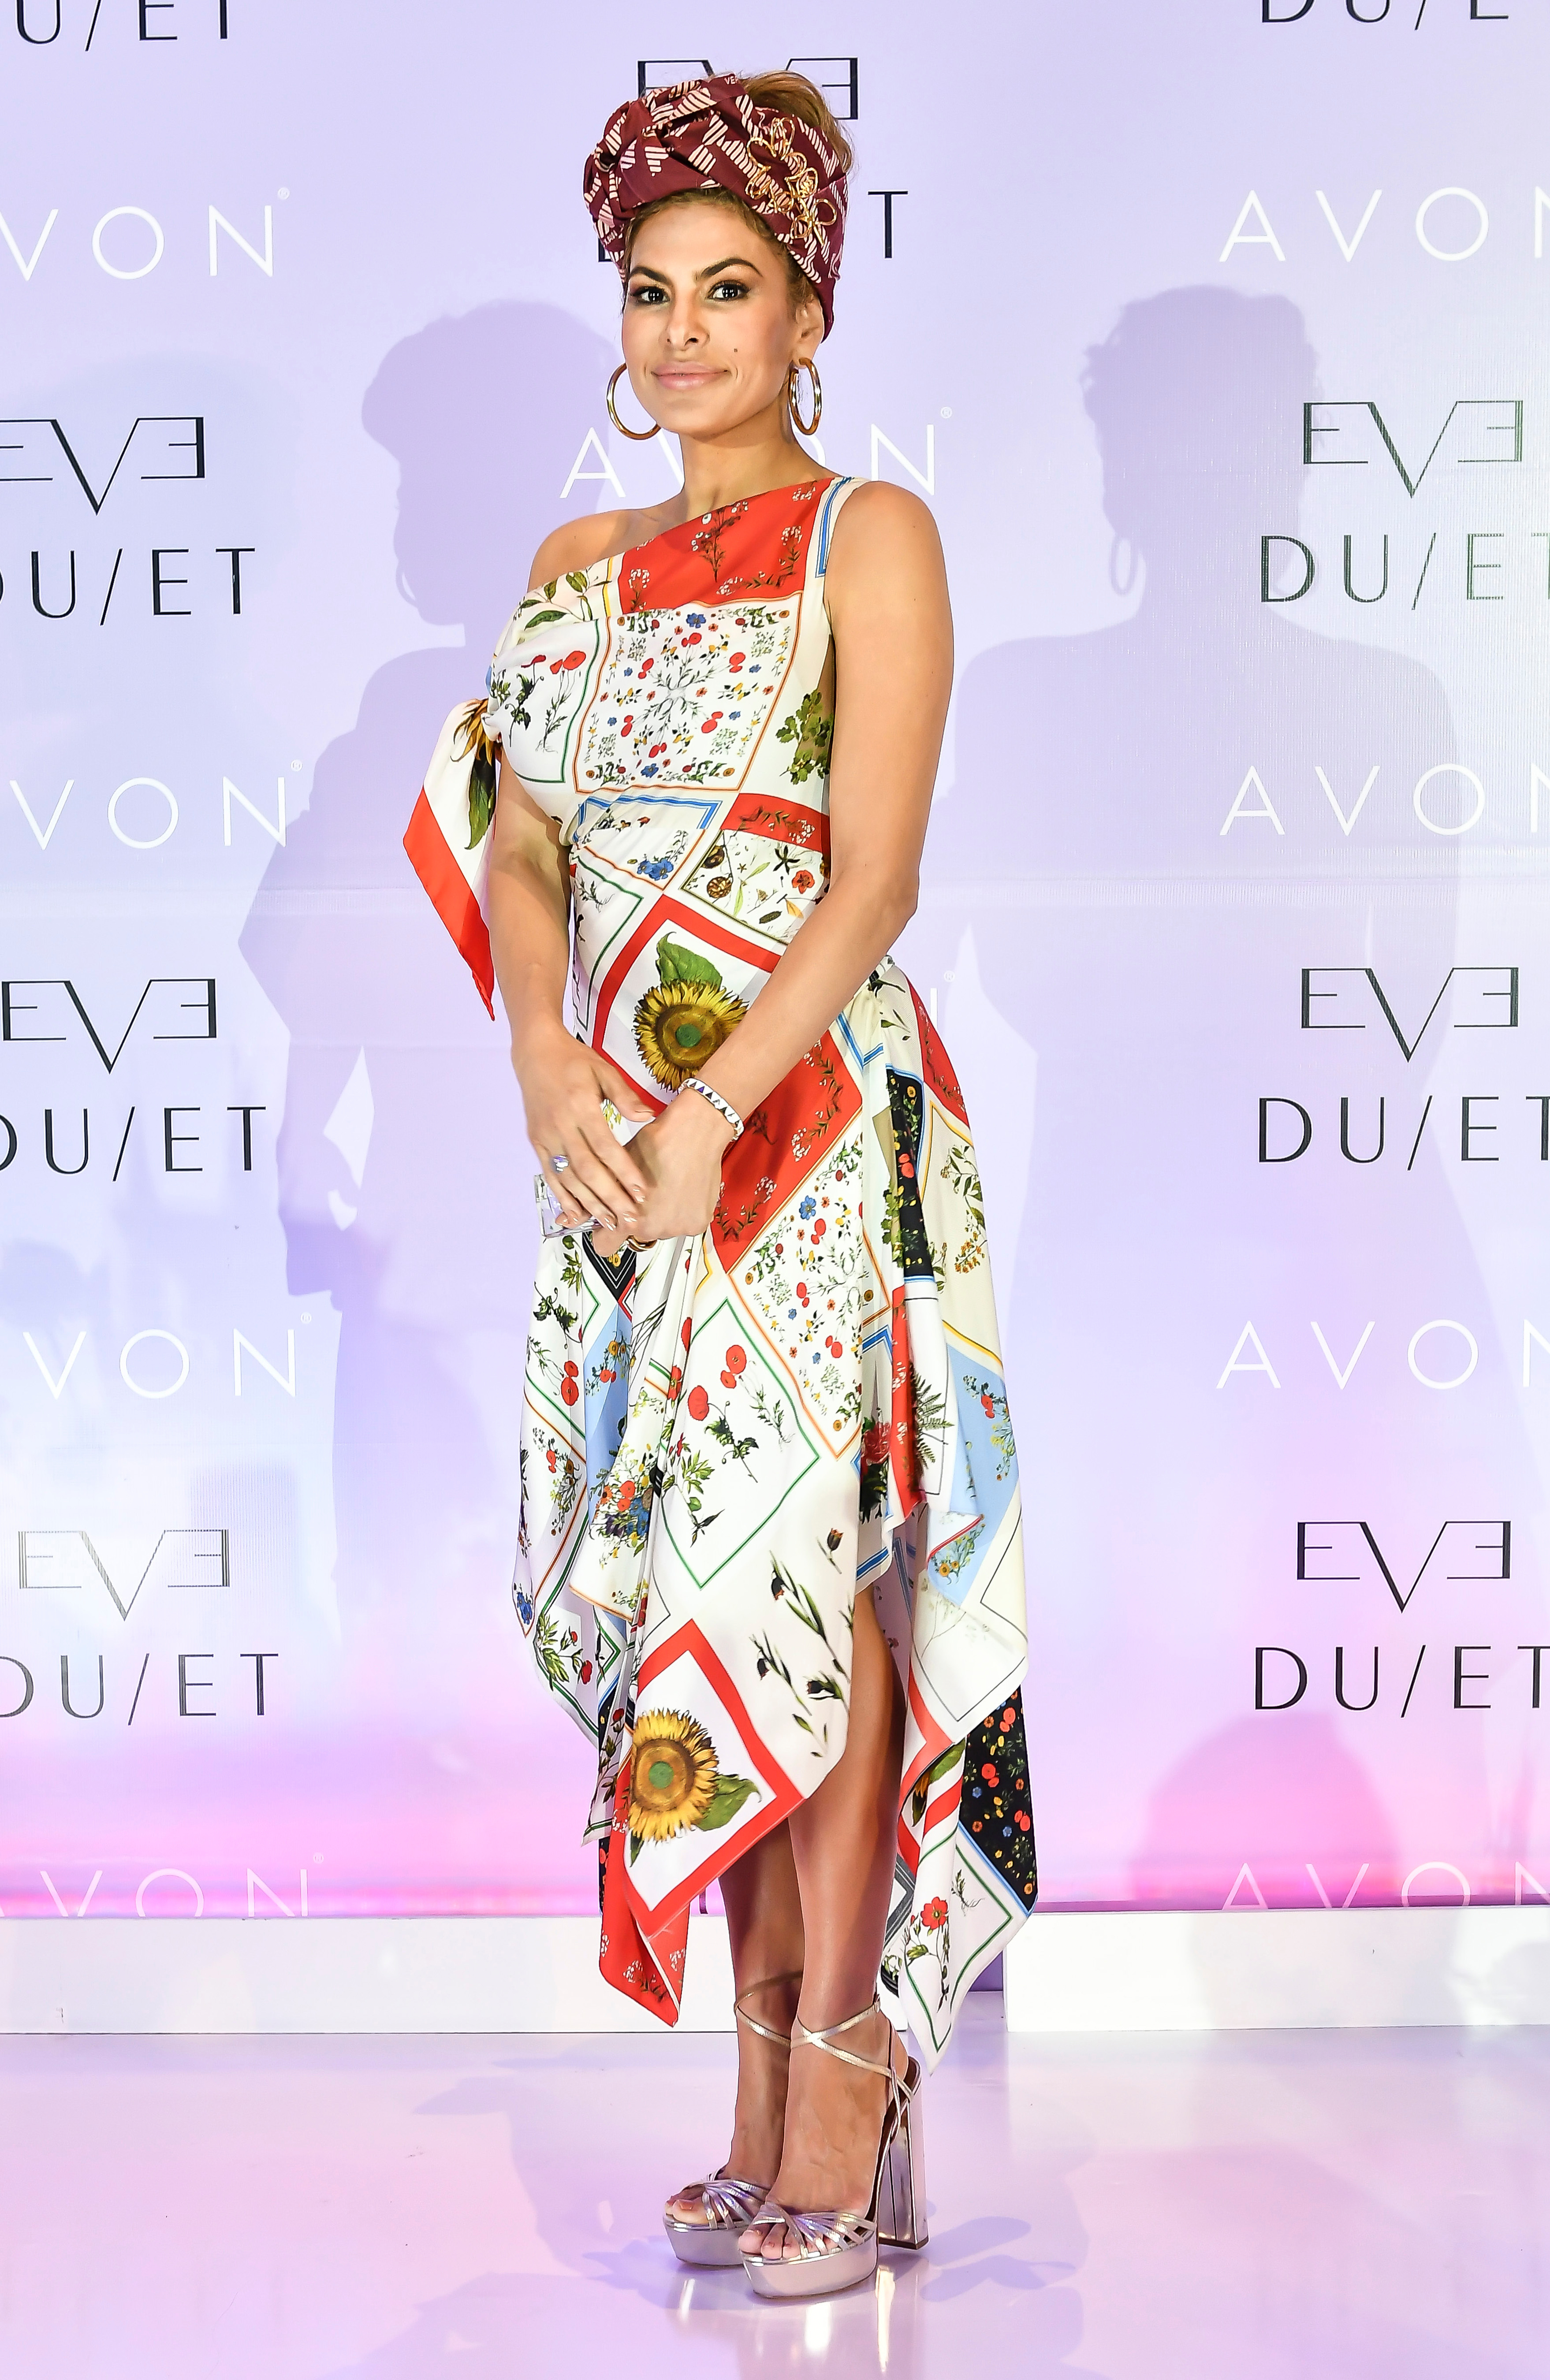 Eva Mendes attends the Eve Due  Perfume Launch in Mexico City on March 21, 2018.